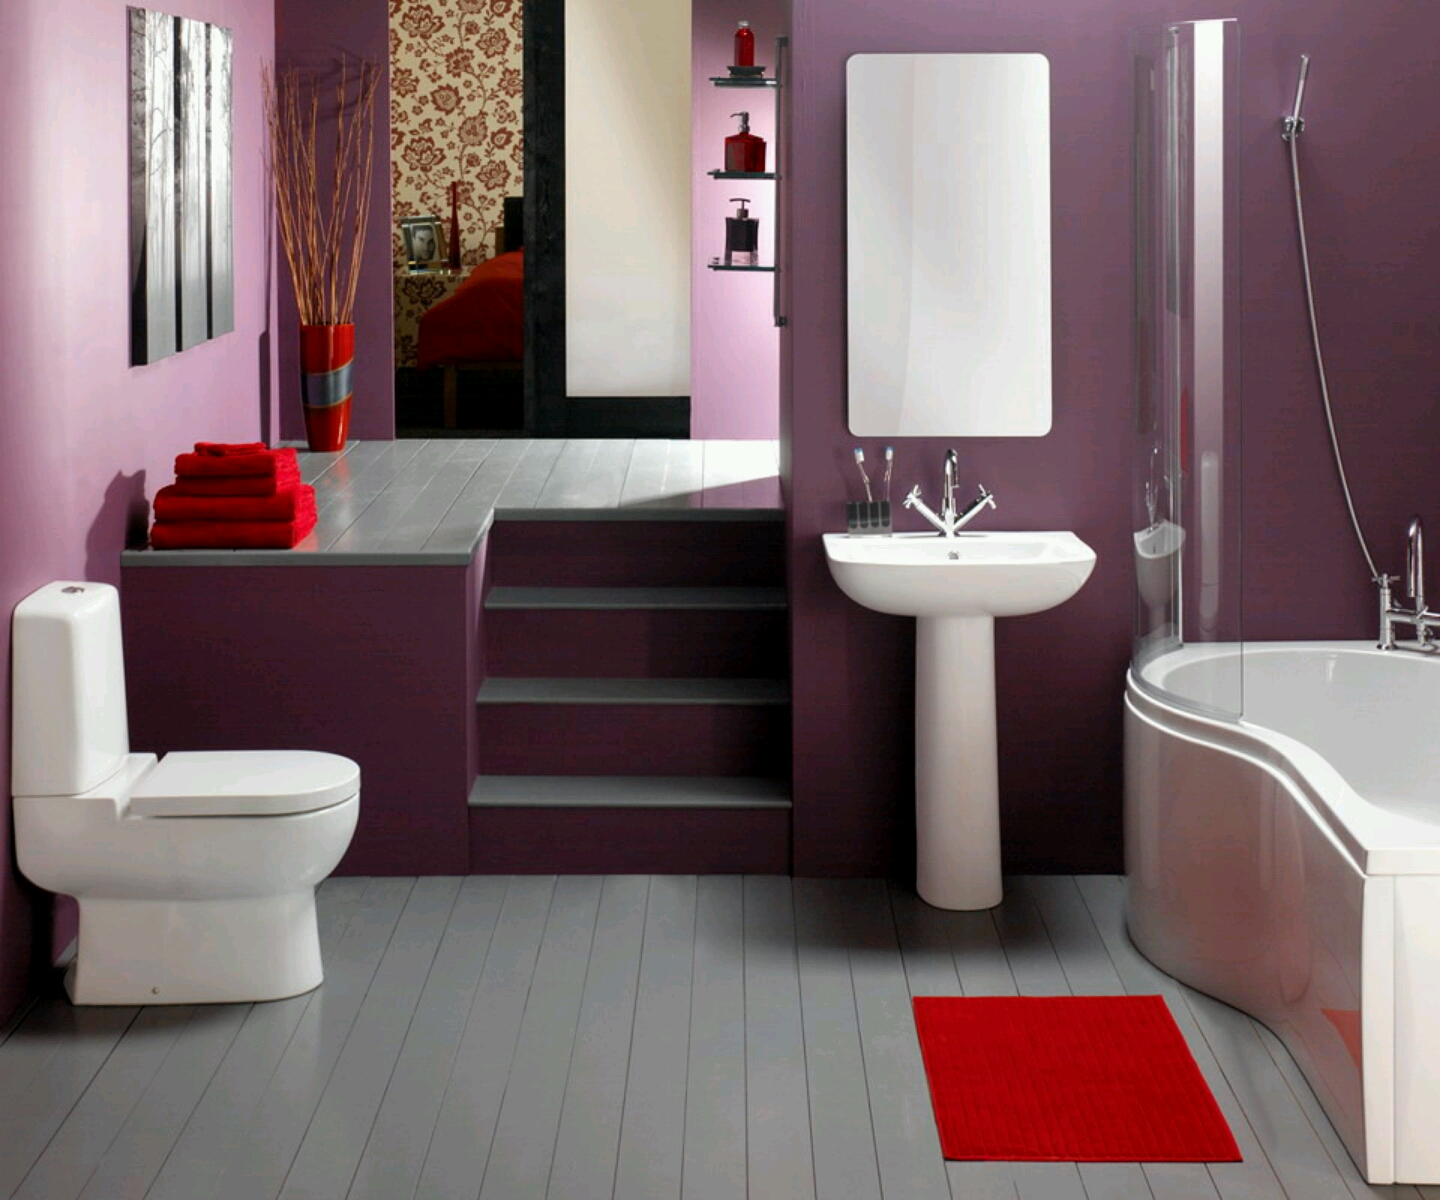 New home designs latest luxury modern bathrooms designs for Contemporary bathroom interior design